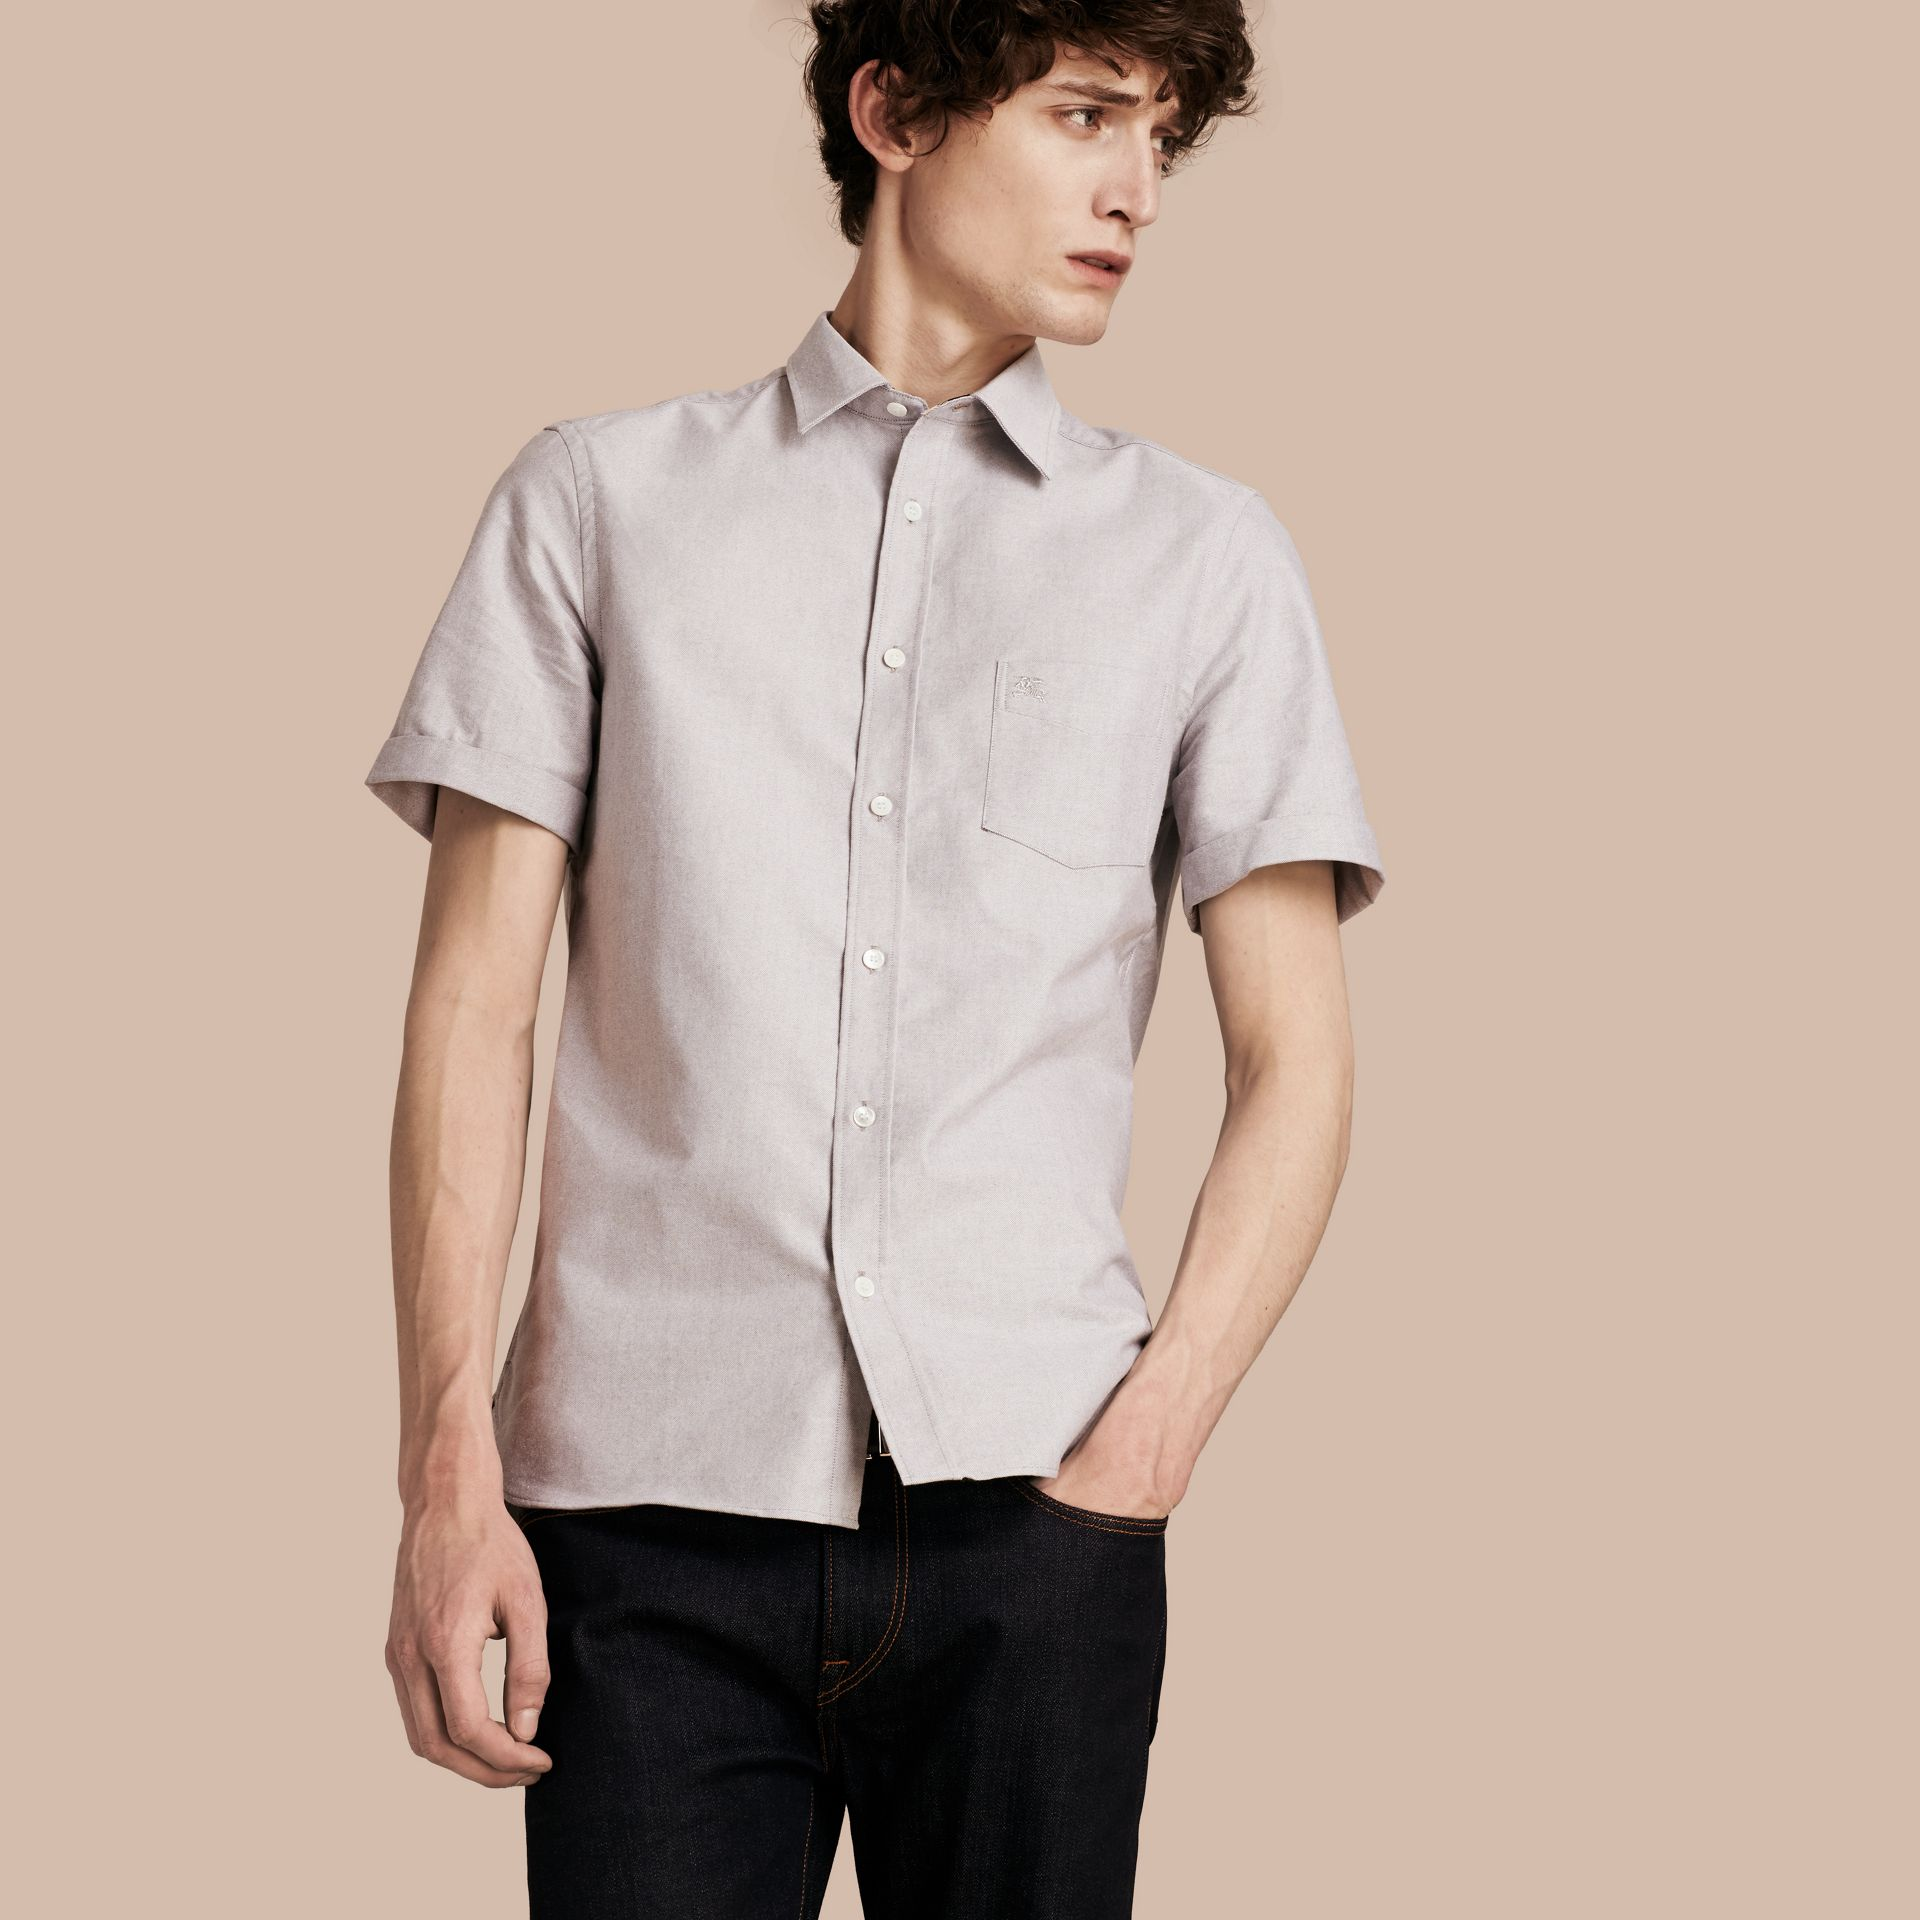 Charcoal Check Detail Short-Sleeved Cotton Oxford Shirt Charcoal - gallery image 1